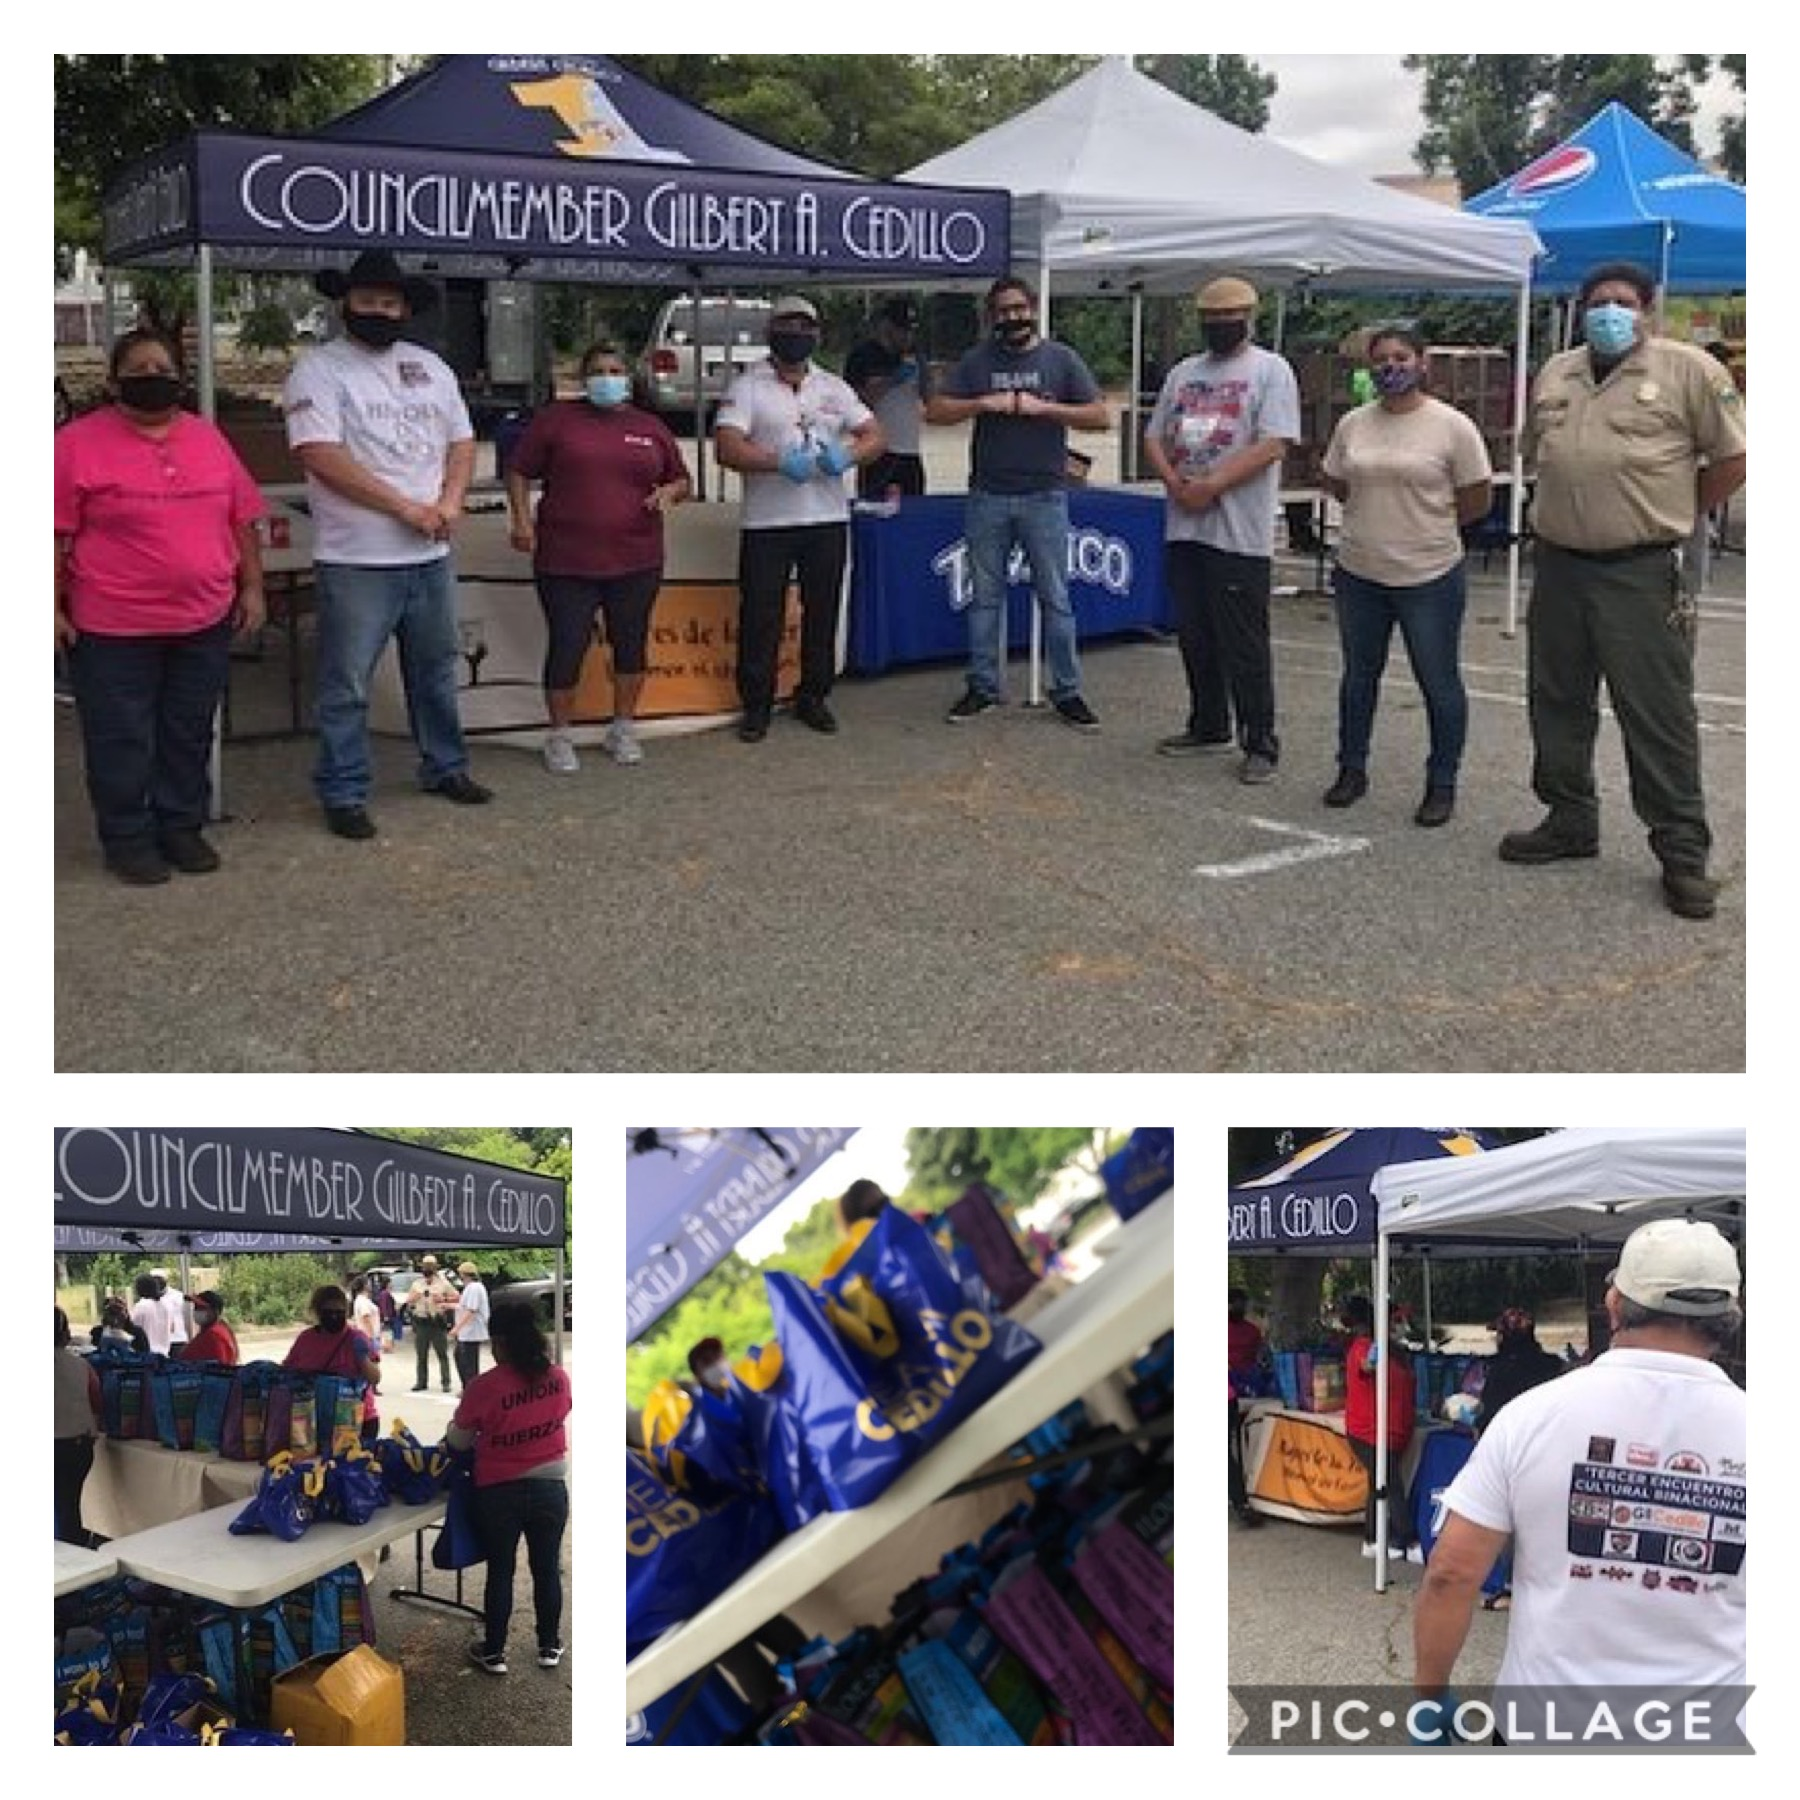 Anahuak, Mujeres de la Tierra, COFEM, Accion Comunitaria and CBO distributed groceries LA River Center in Cypress Park 5-29-2020 COLLAGE